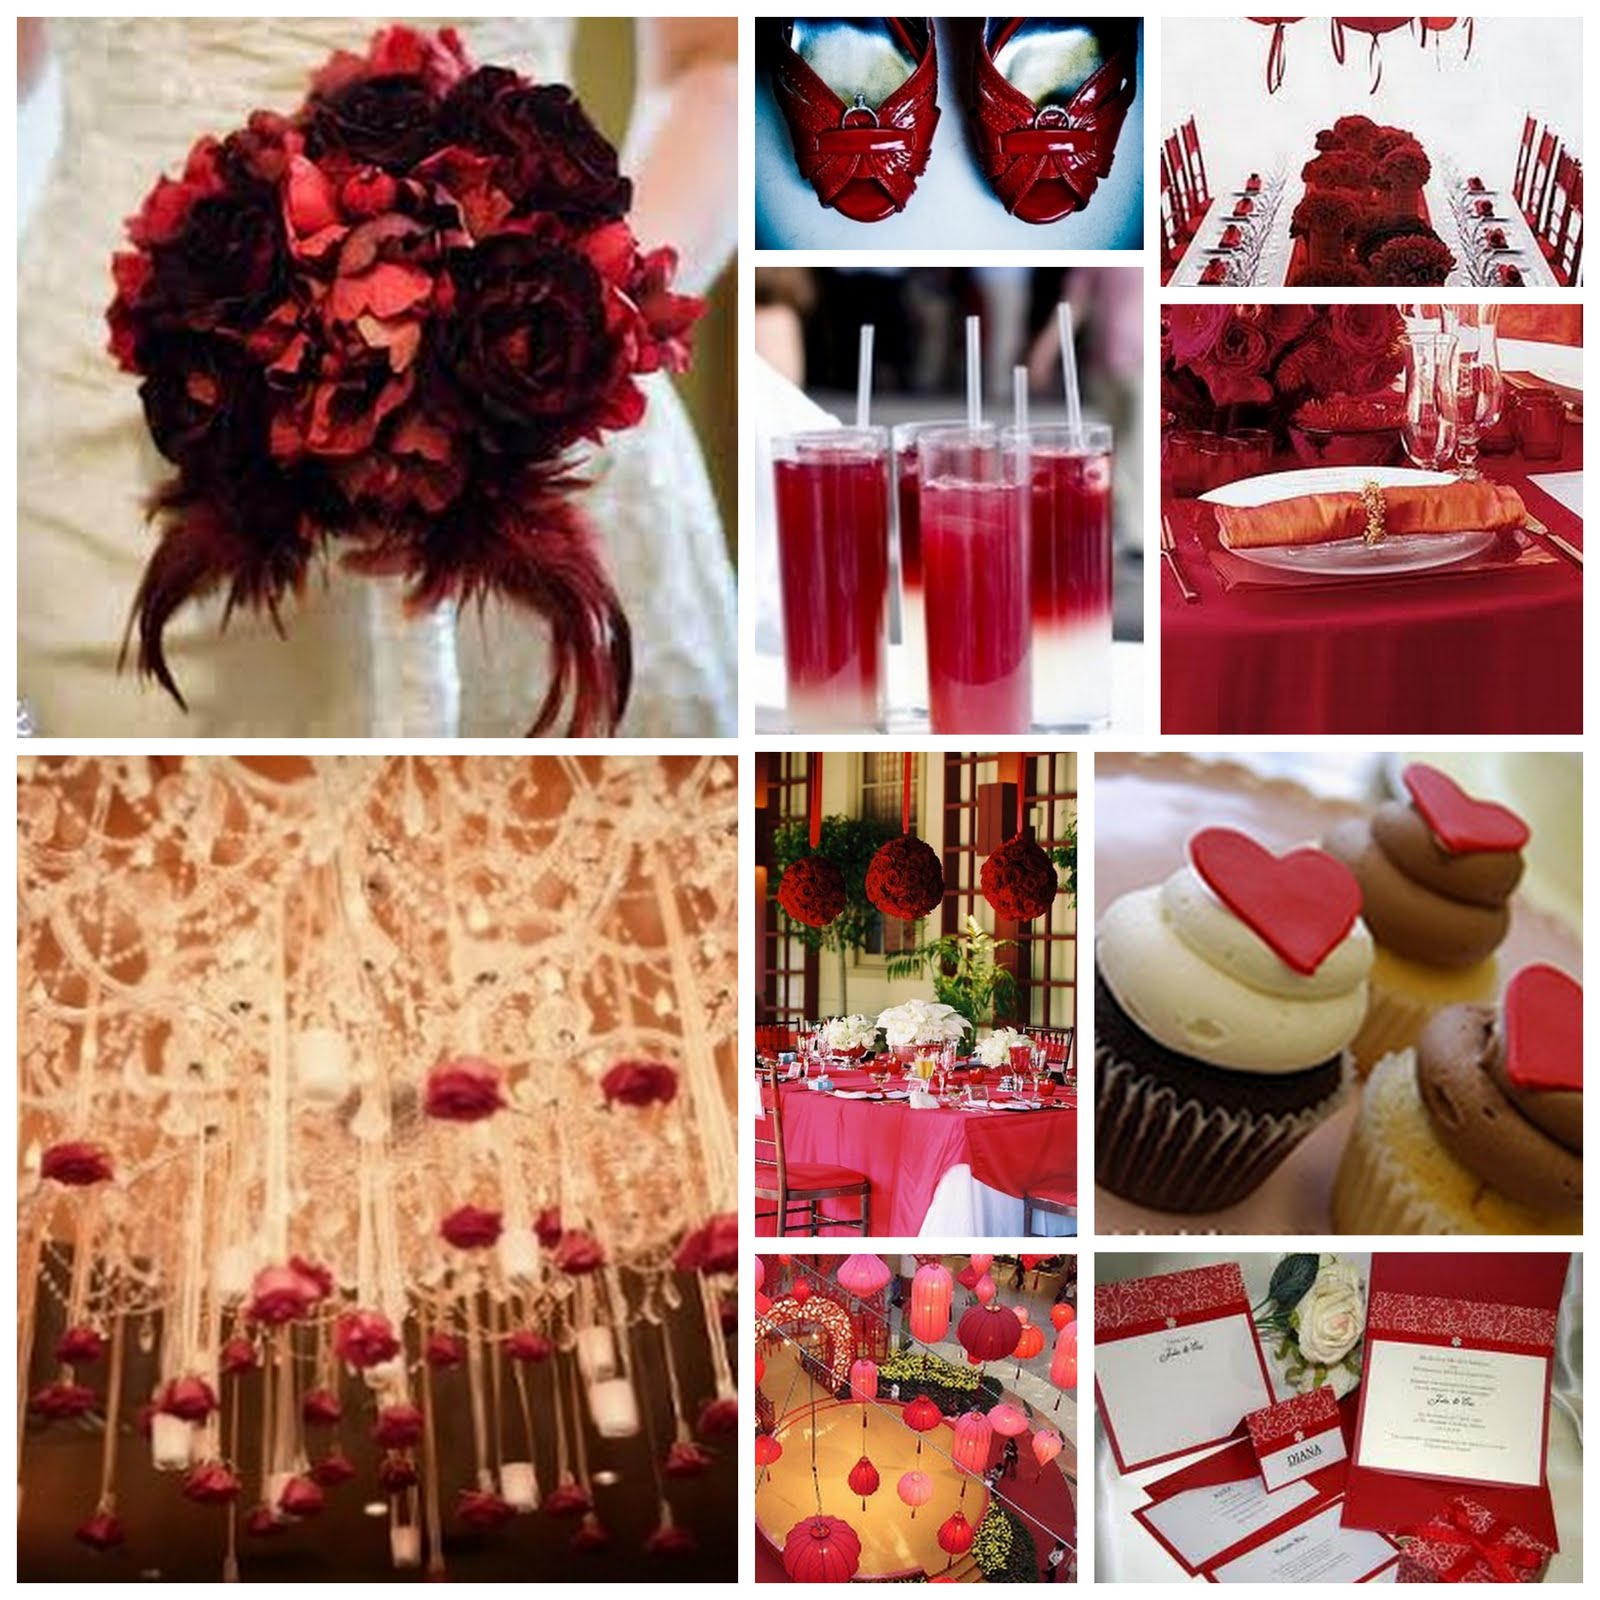 Red And White Table Decorations For A Wedding